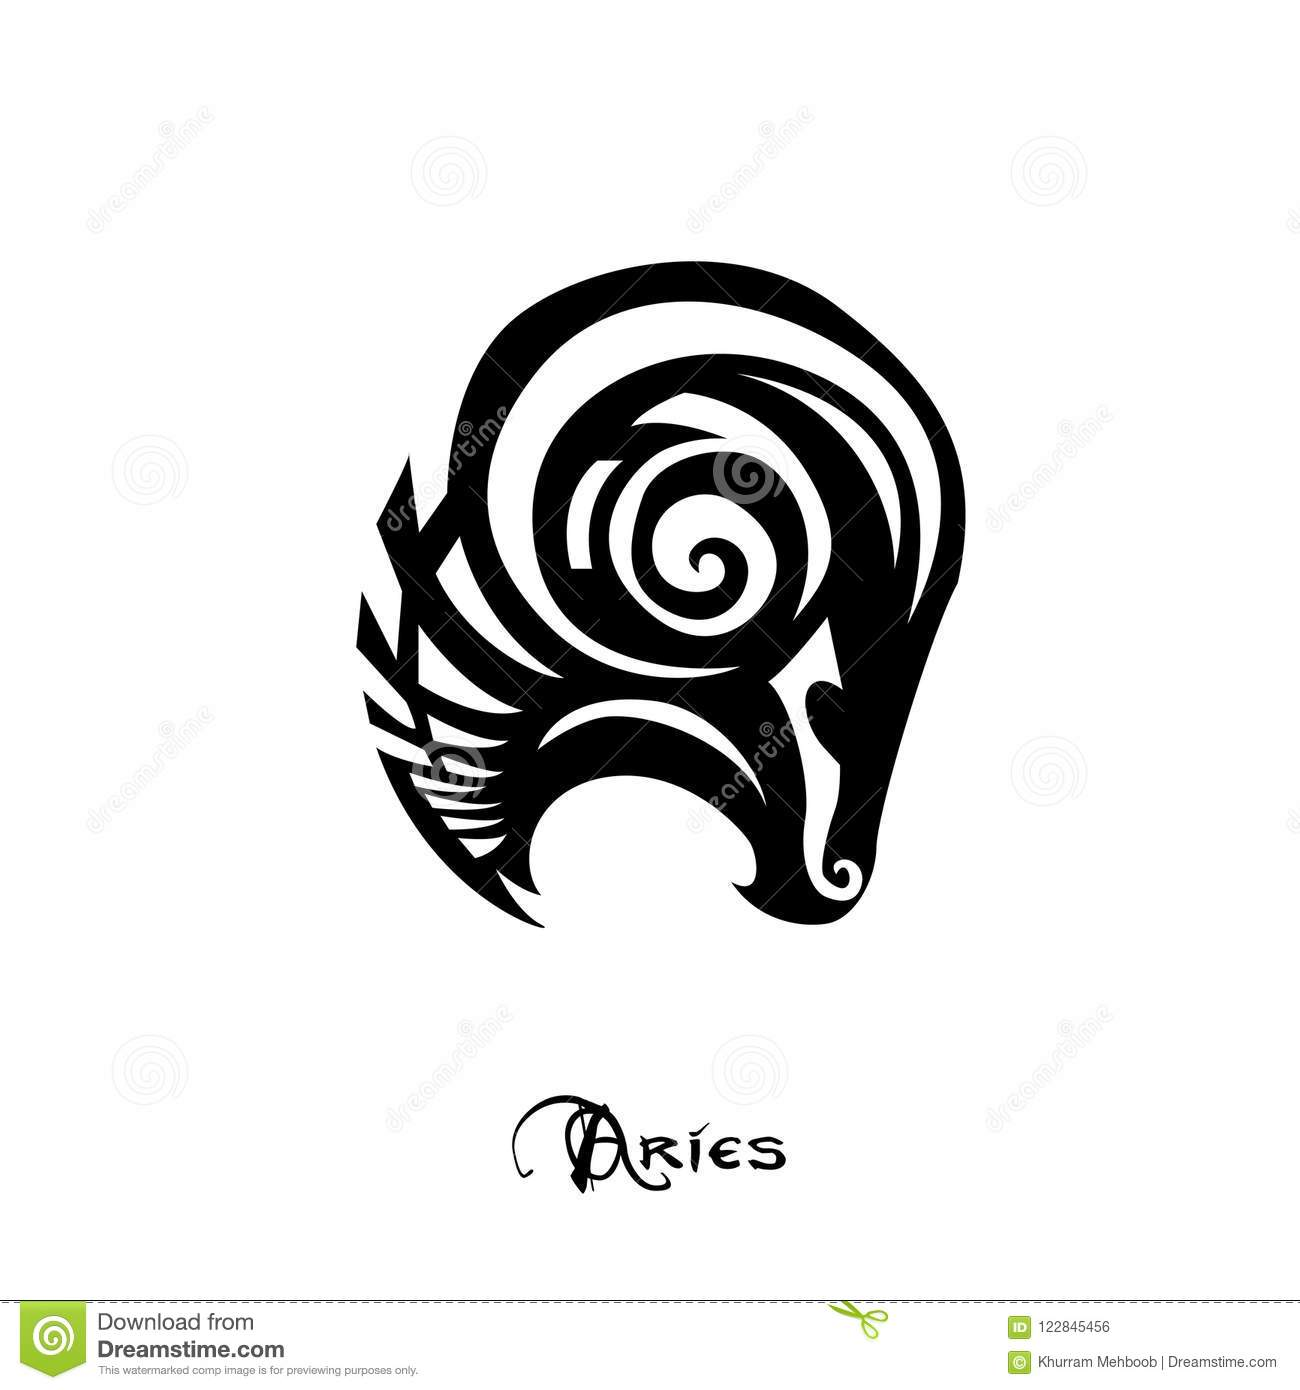 Aries Zodiac Sign Tattoo Style Stock Vector Illustration Of Symbol